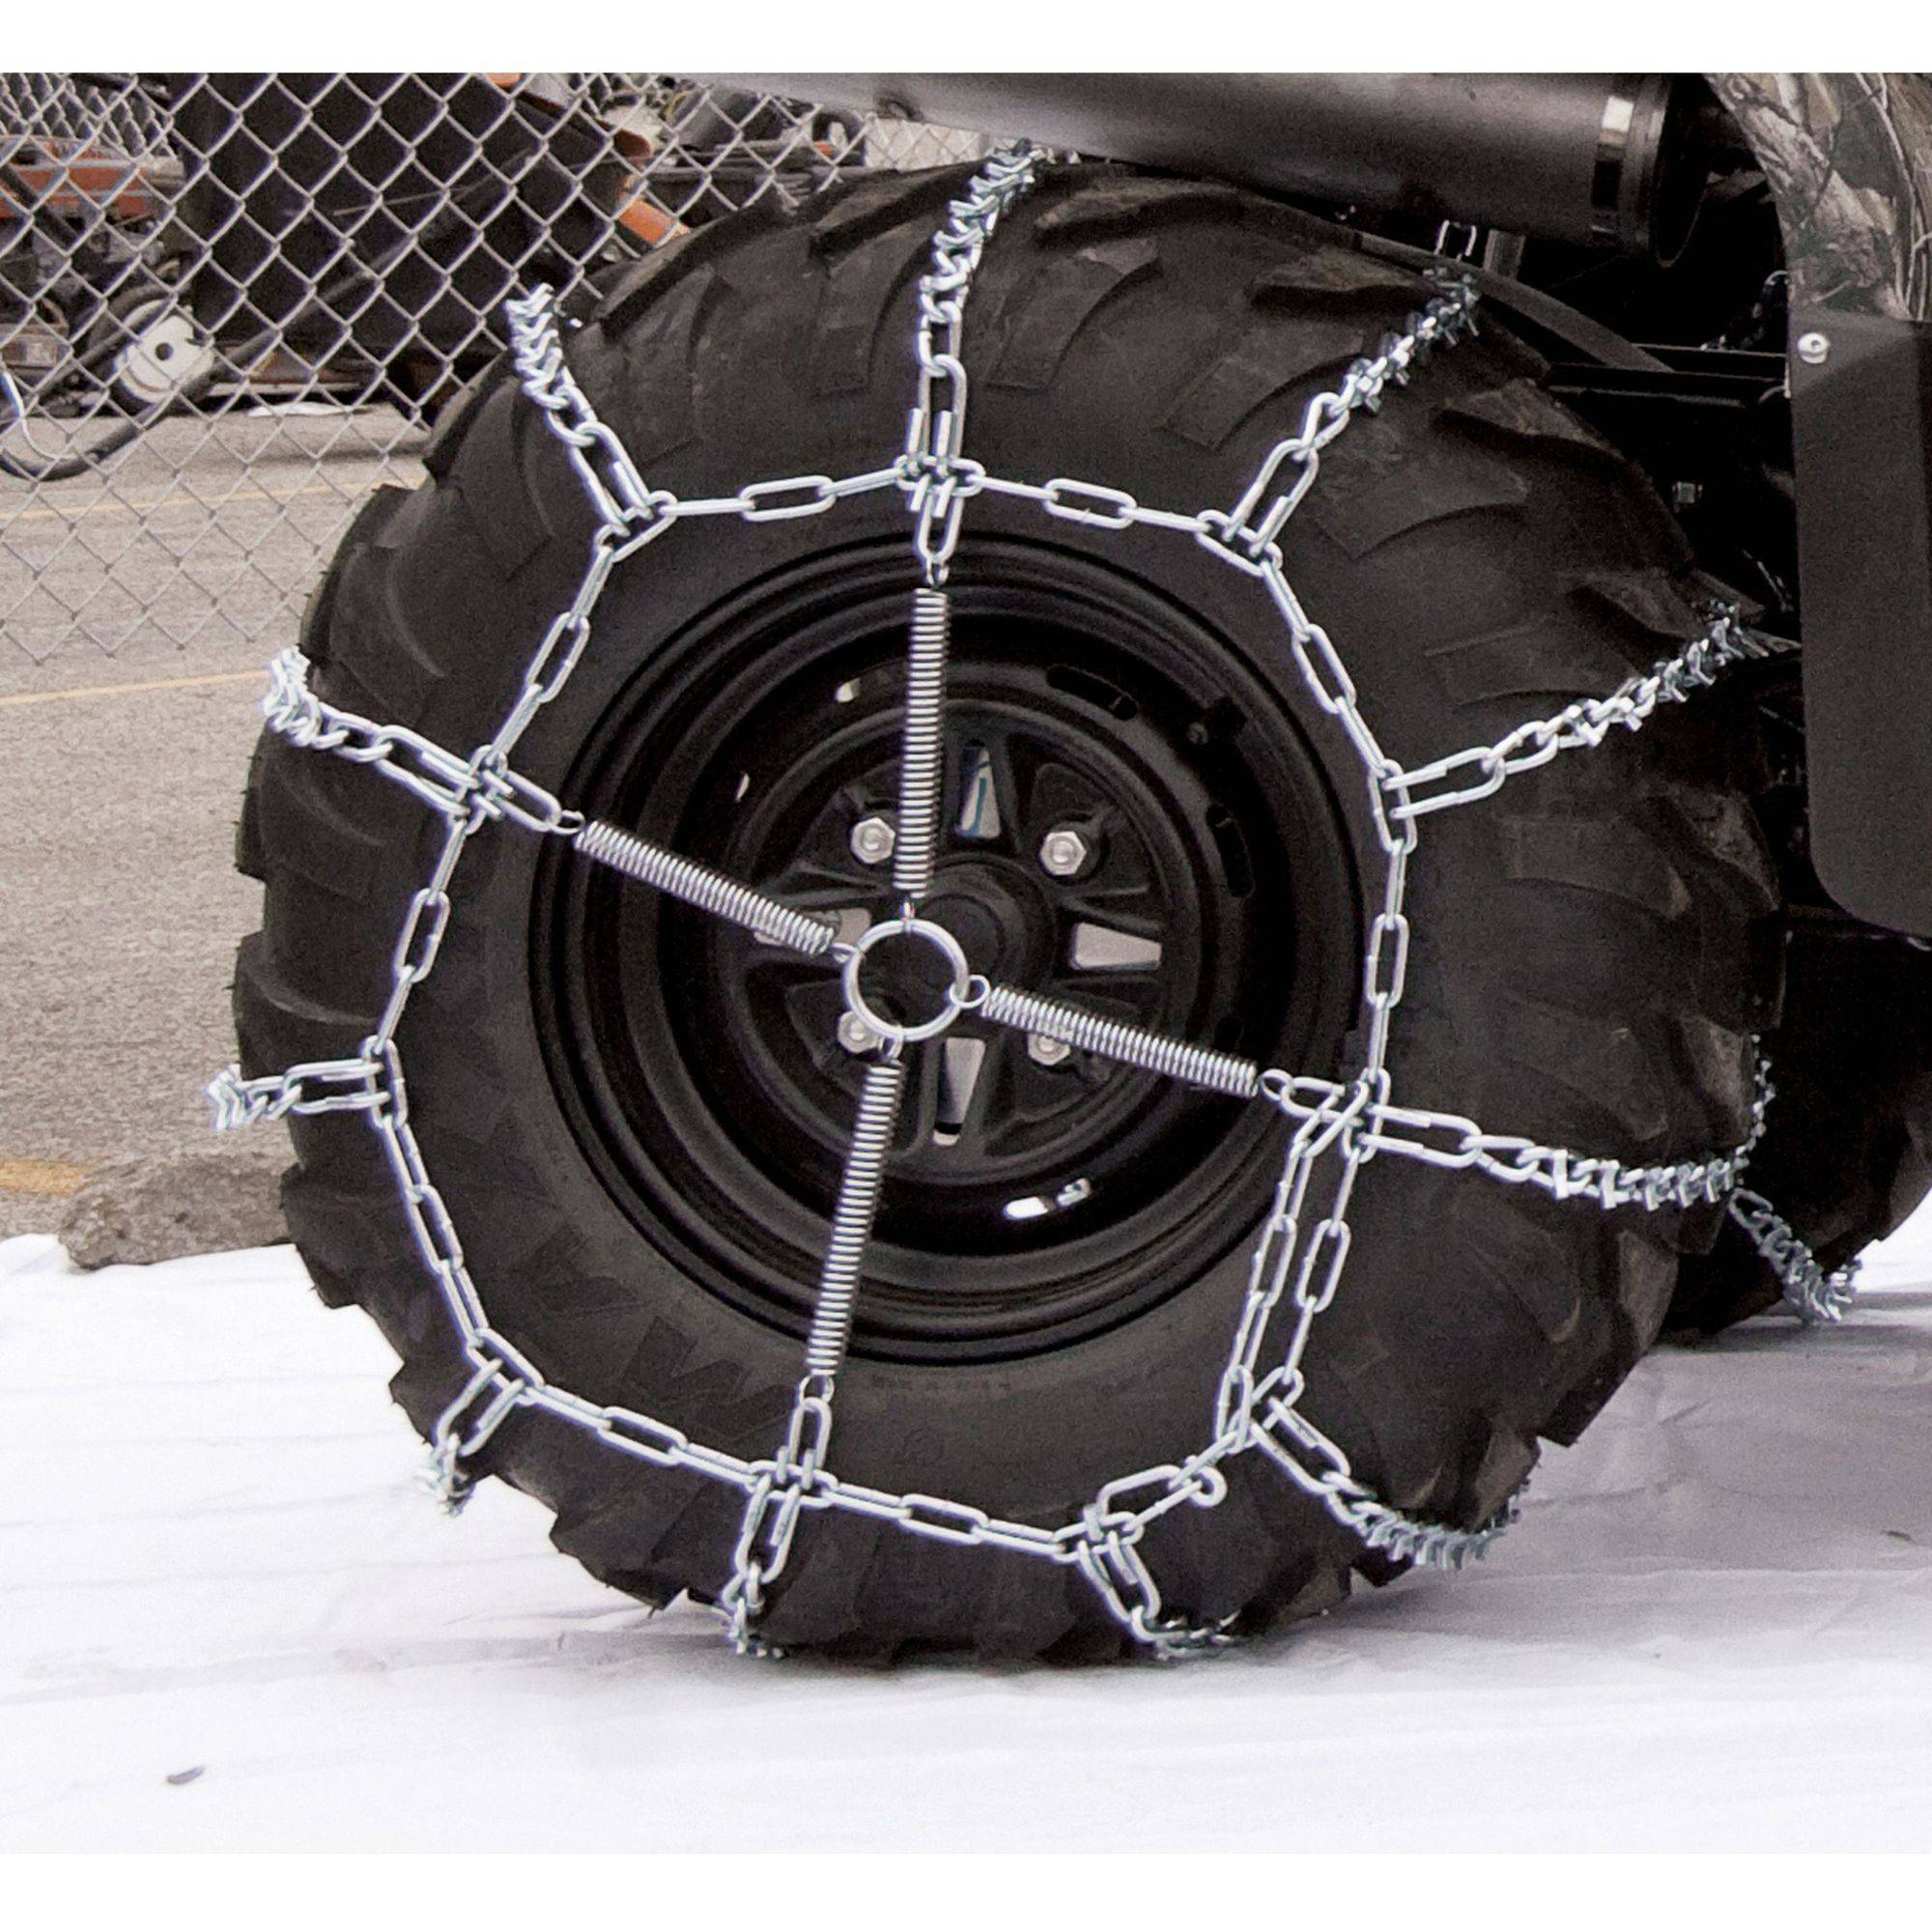 Atv V-Bar Tire Chains, 25X8X12, 4 Link Spacing by Peerless Chain Company